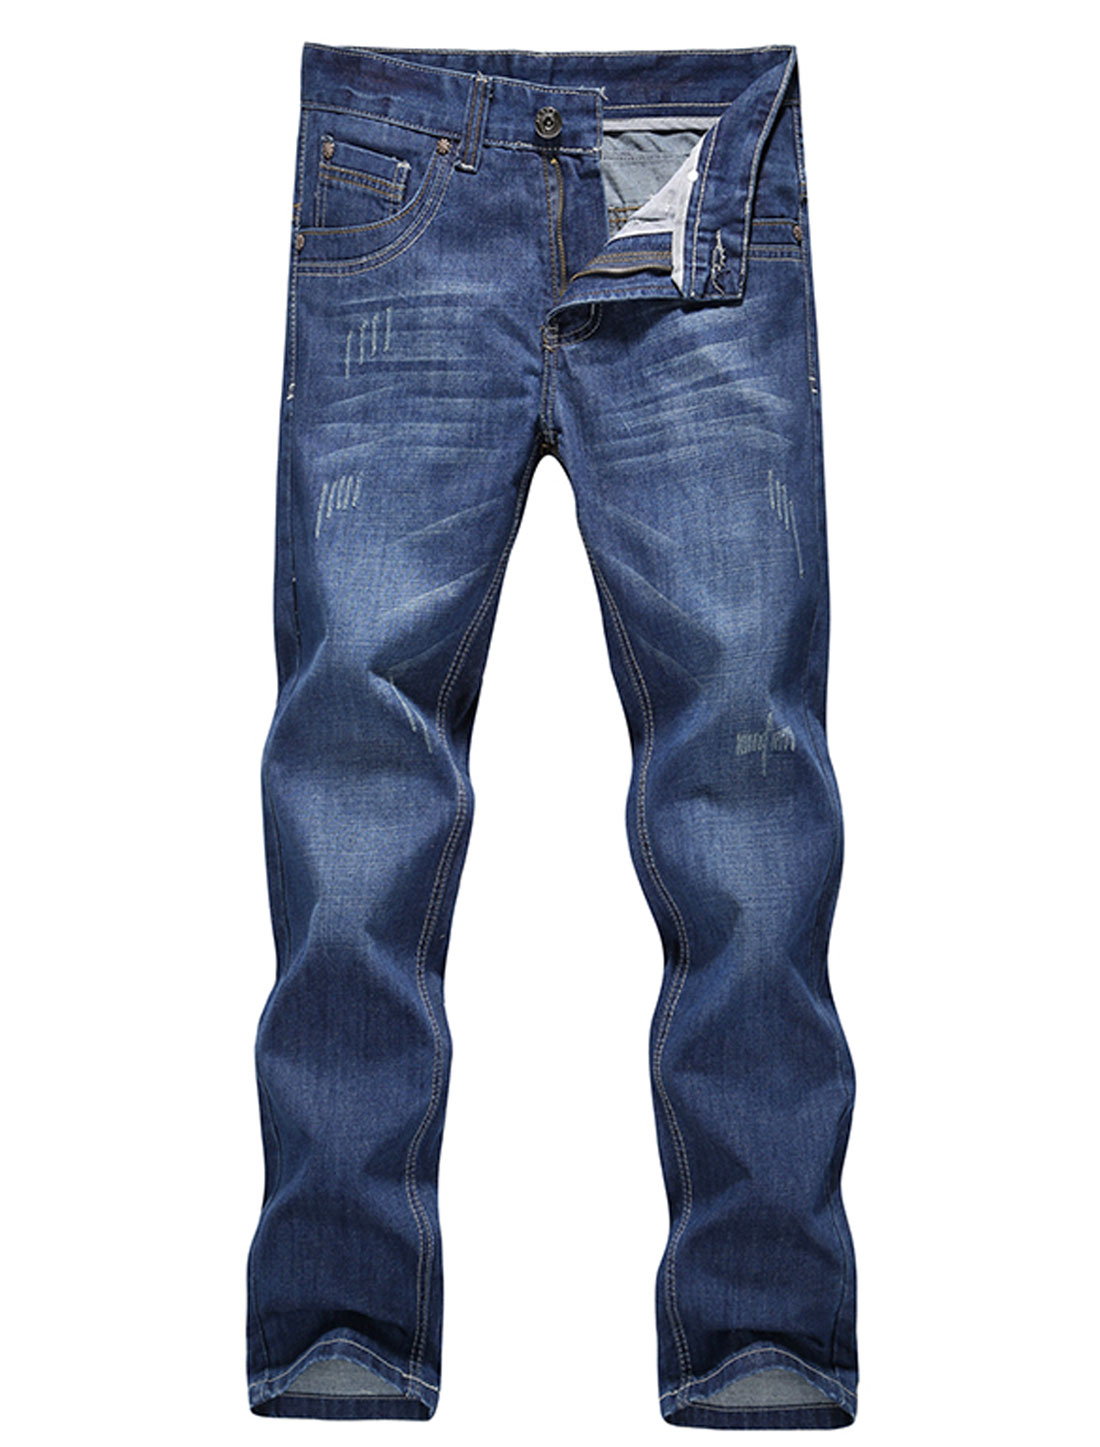 Natural Waist Embroiery Detail Casual Jeans for Men Blue W36